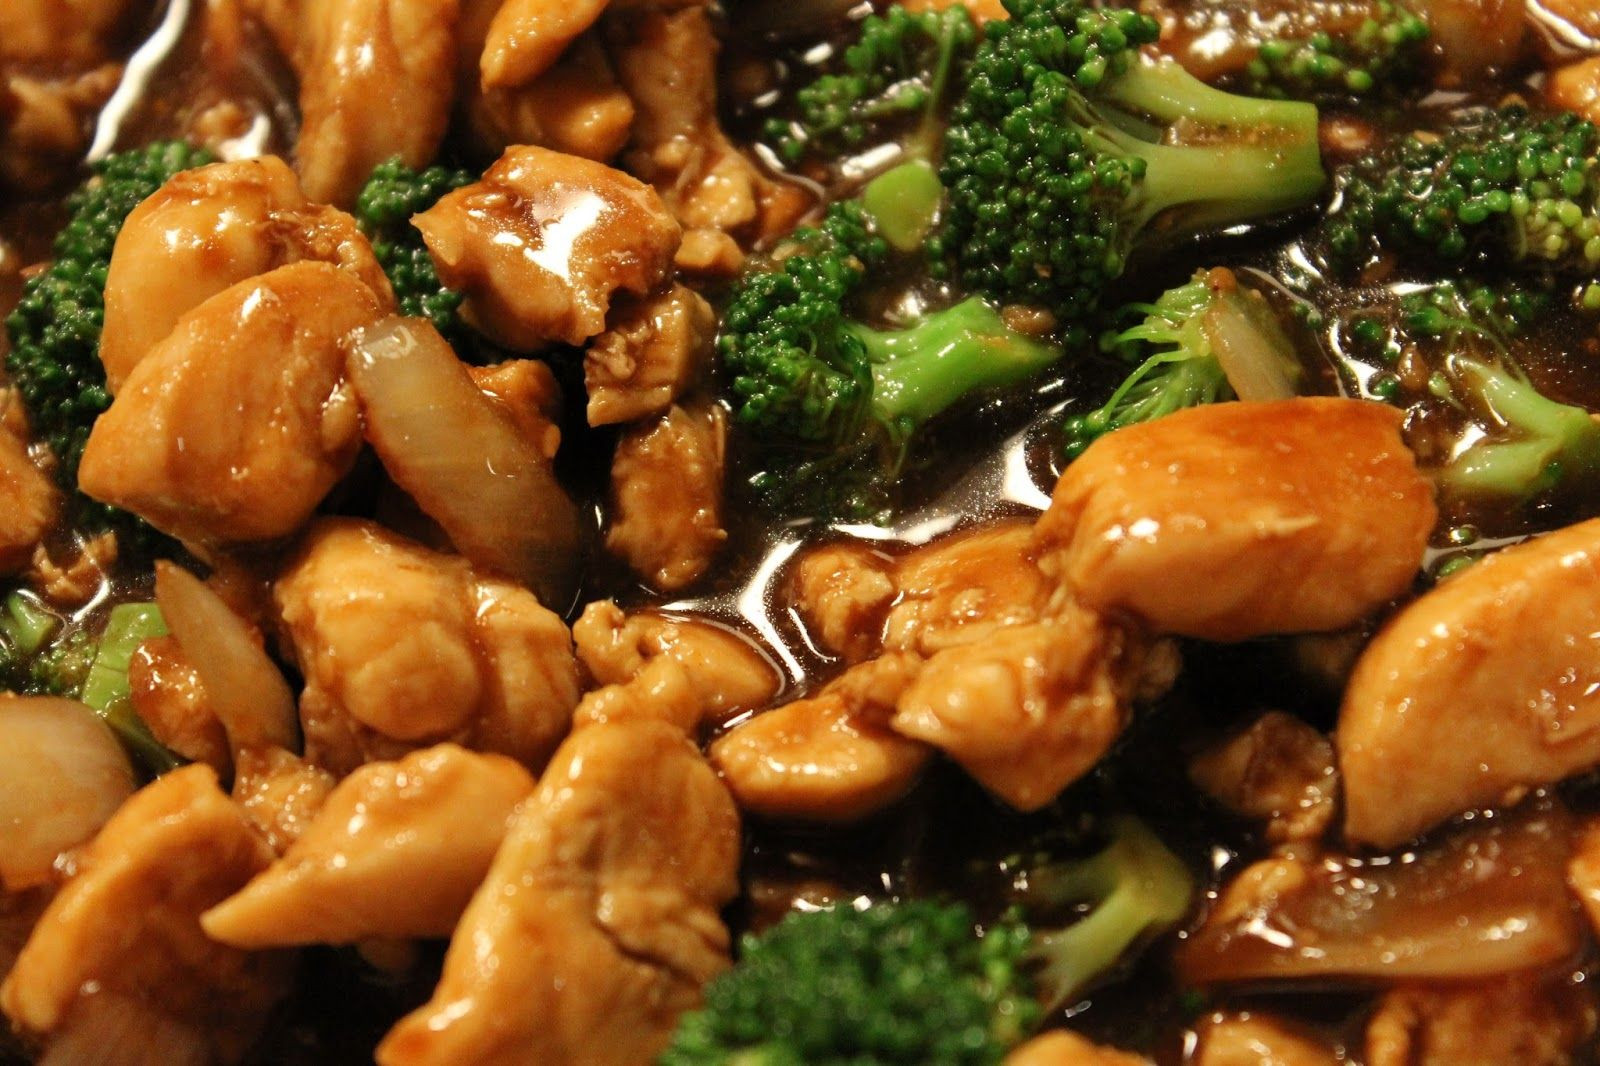 Chinese Chicken And Broccoli Recipes  Chicken and Broccoli in Brown Sauce You Can Make it at